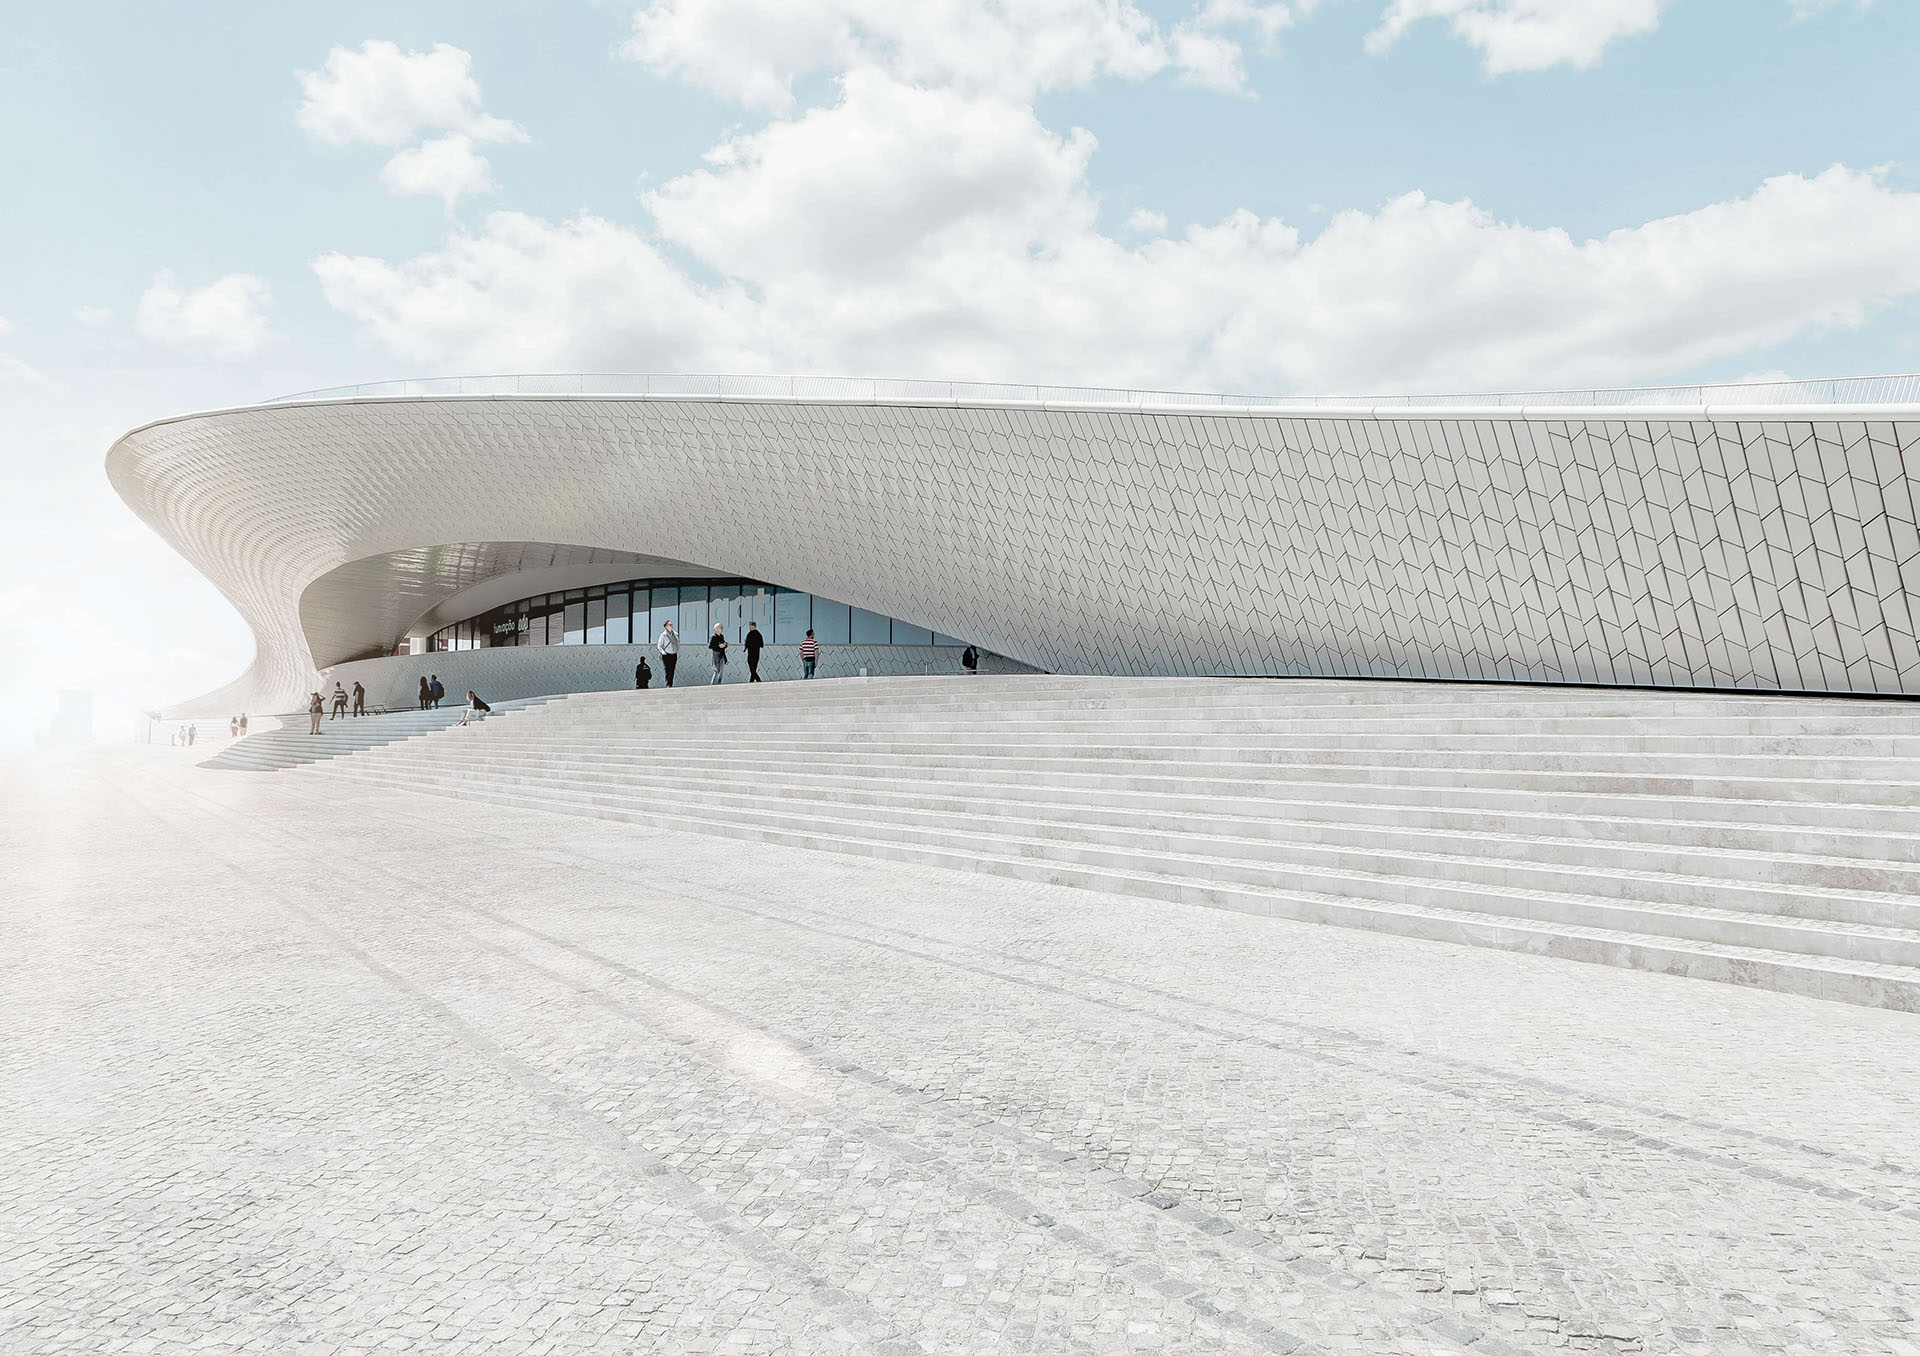 Photography: Exploring the The MAAT in Lisbon, Portugal